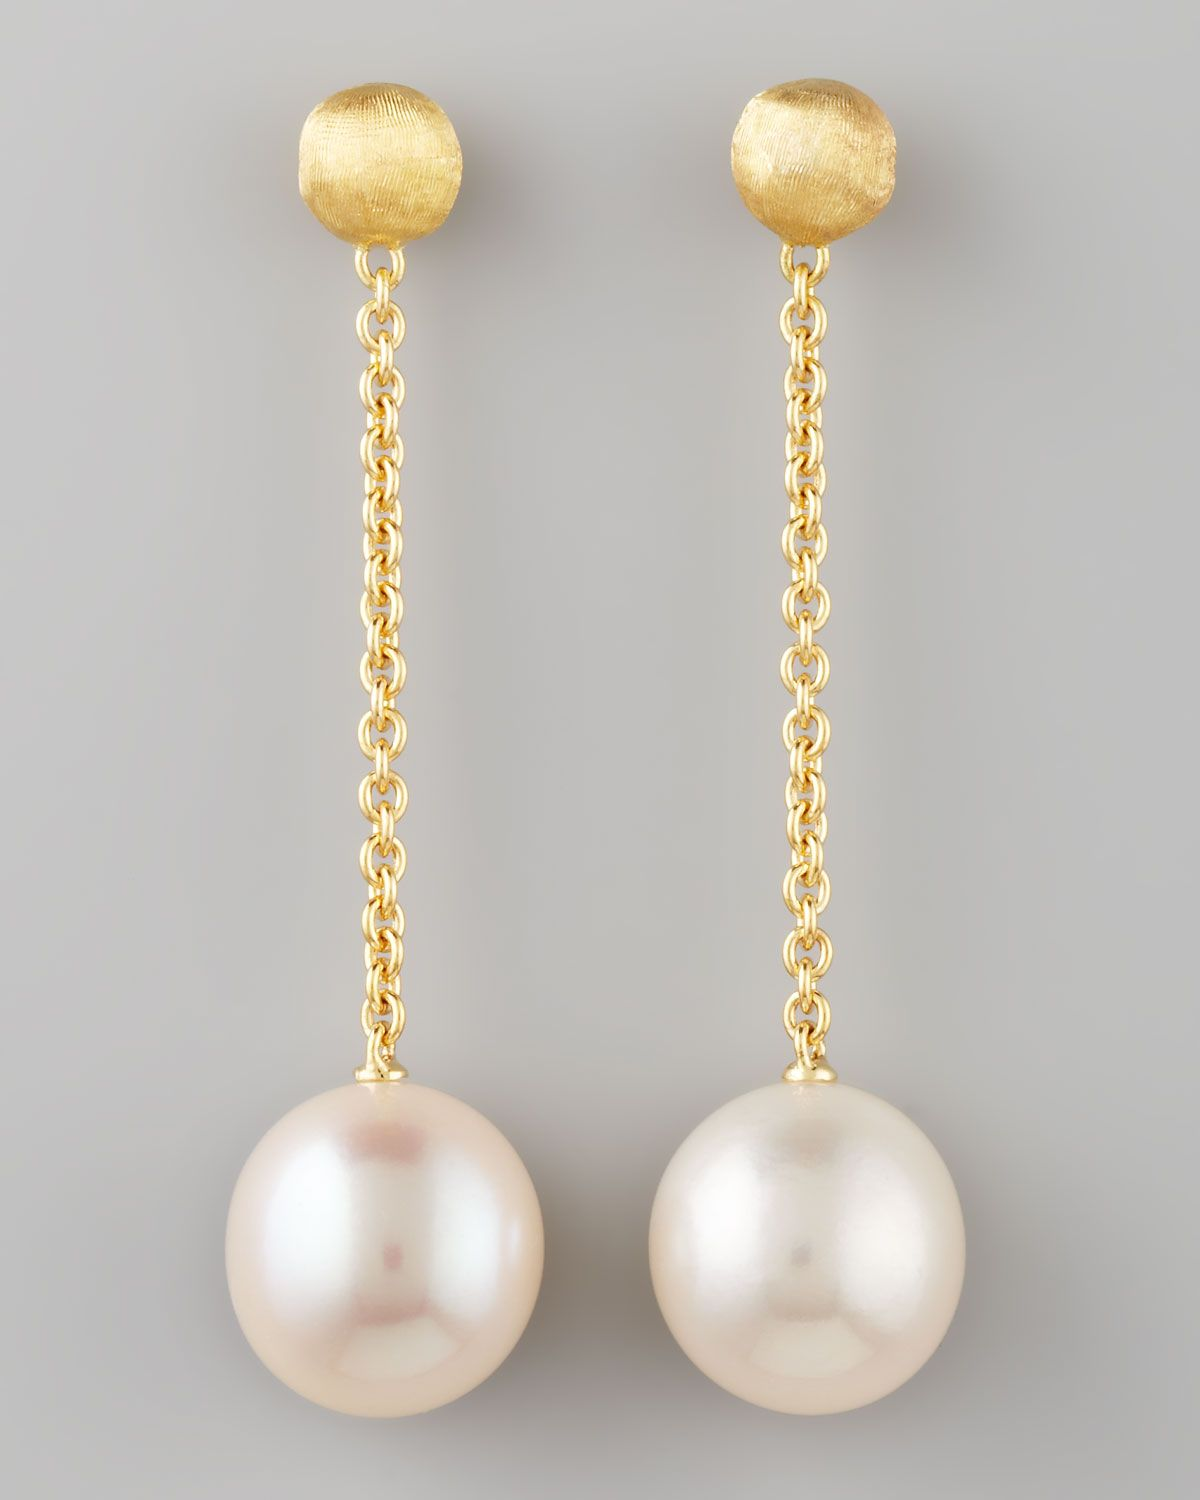 ar satin or earrings set rose products img pearls necklace white company earring in day blue silver gold wedding and pearl fotor single pink todaycharm jewelry